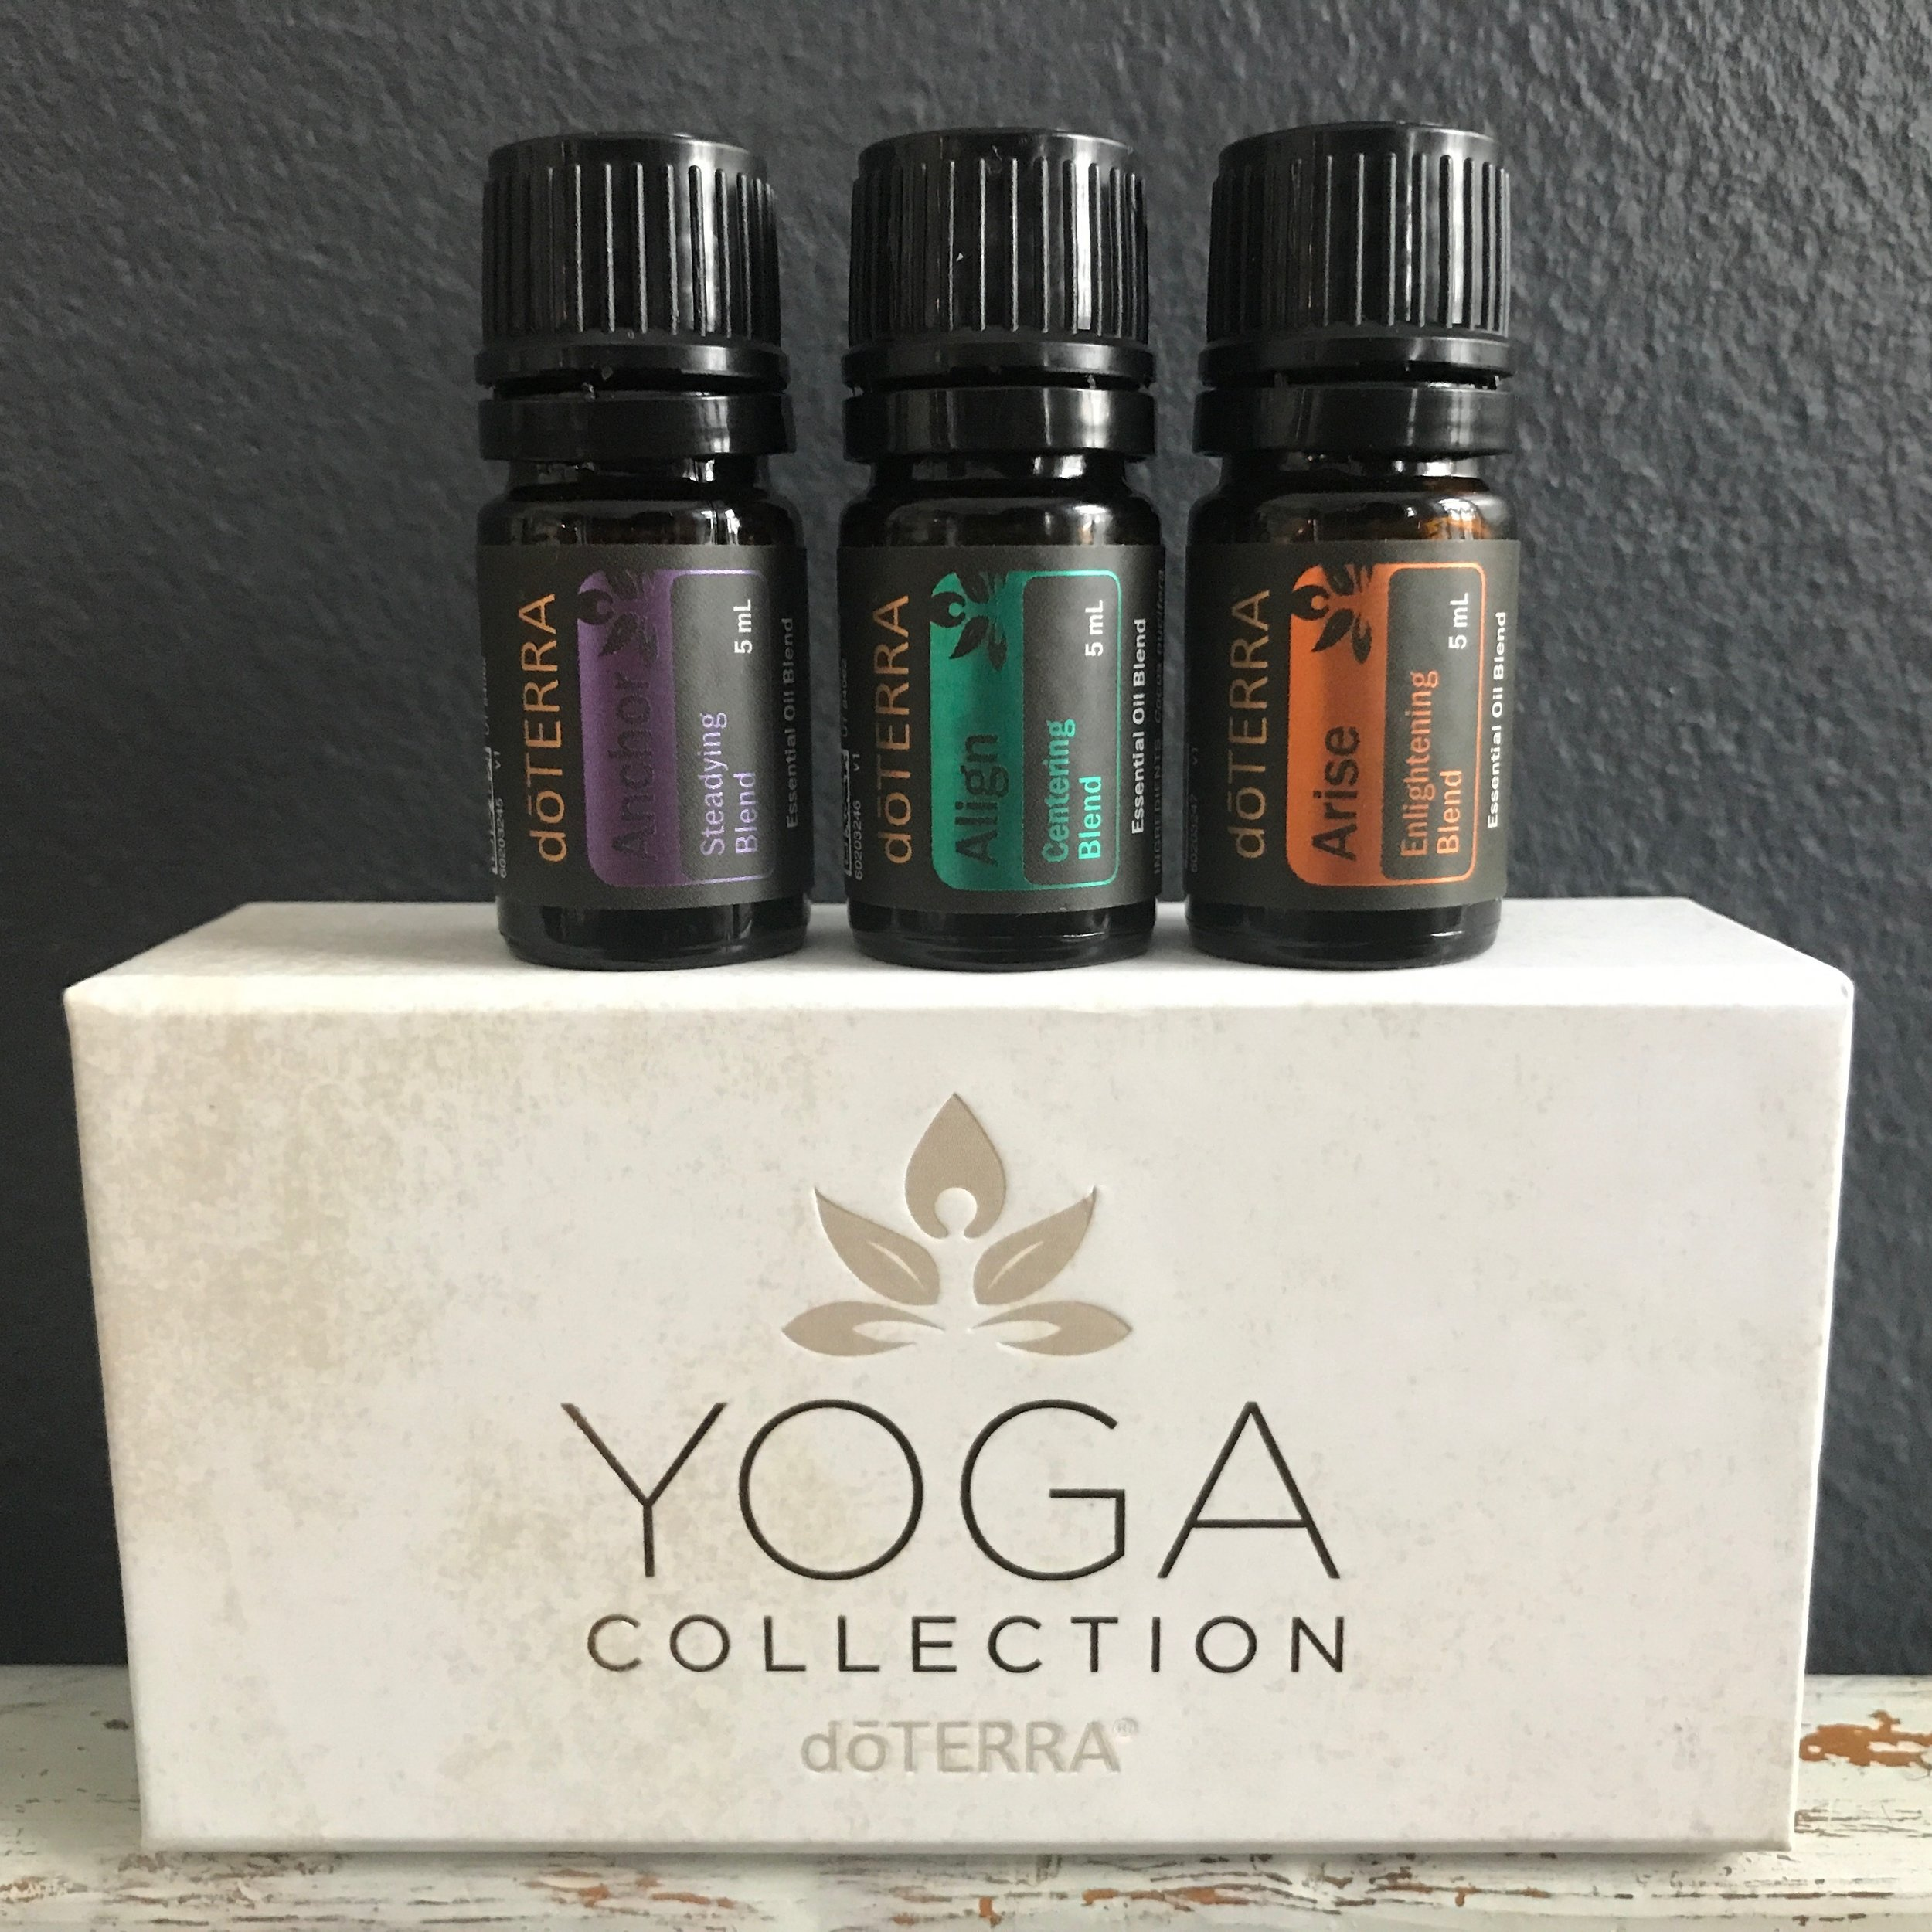 Yoga Collection €69#60205682 - Anchor 5 ml, promotes feelings of completeness, calmness, & courage.Align 5 ml, enocourages harmony & calm progress.Arise 5 ml, helps to instill feelings of happiness, clarity & courage.(If you are not yet a member remember to add €25 for the enrollment fee).